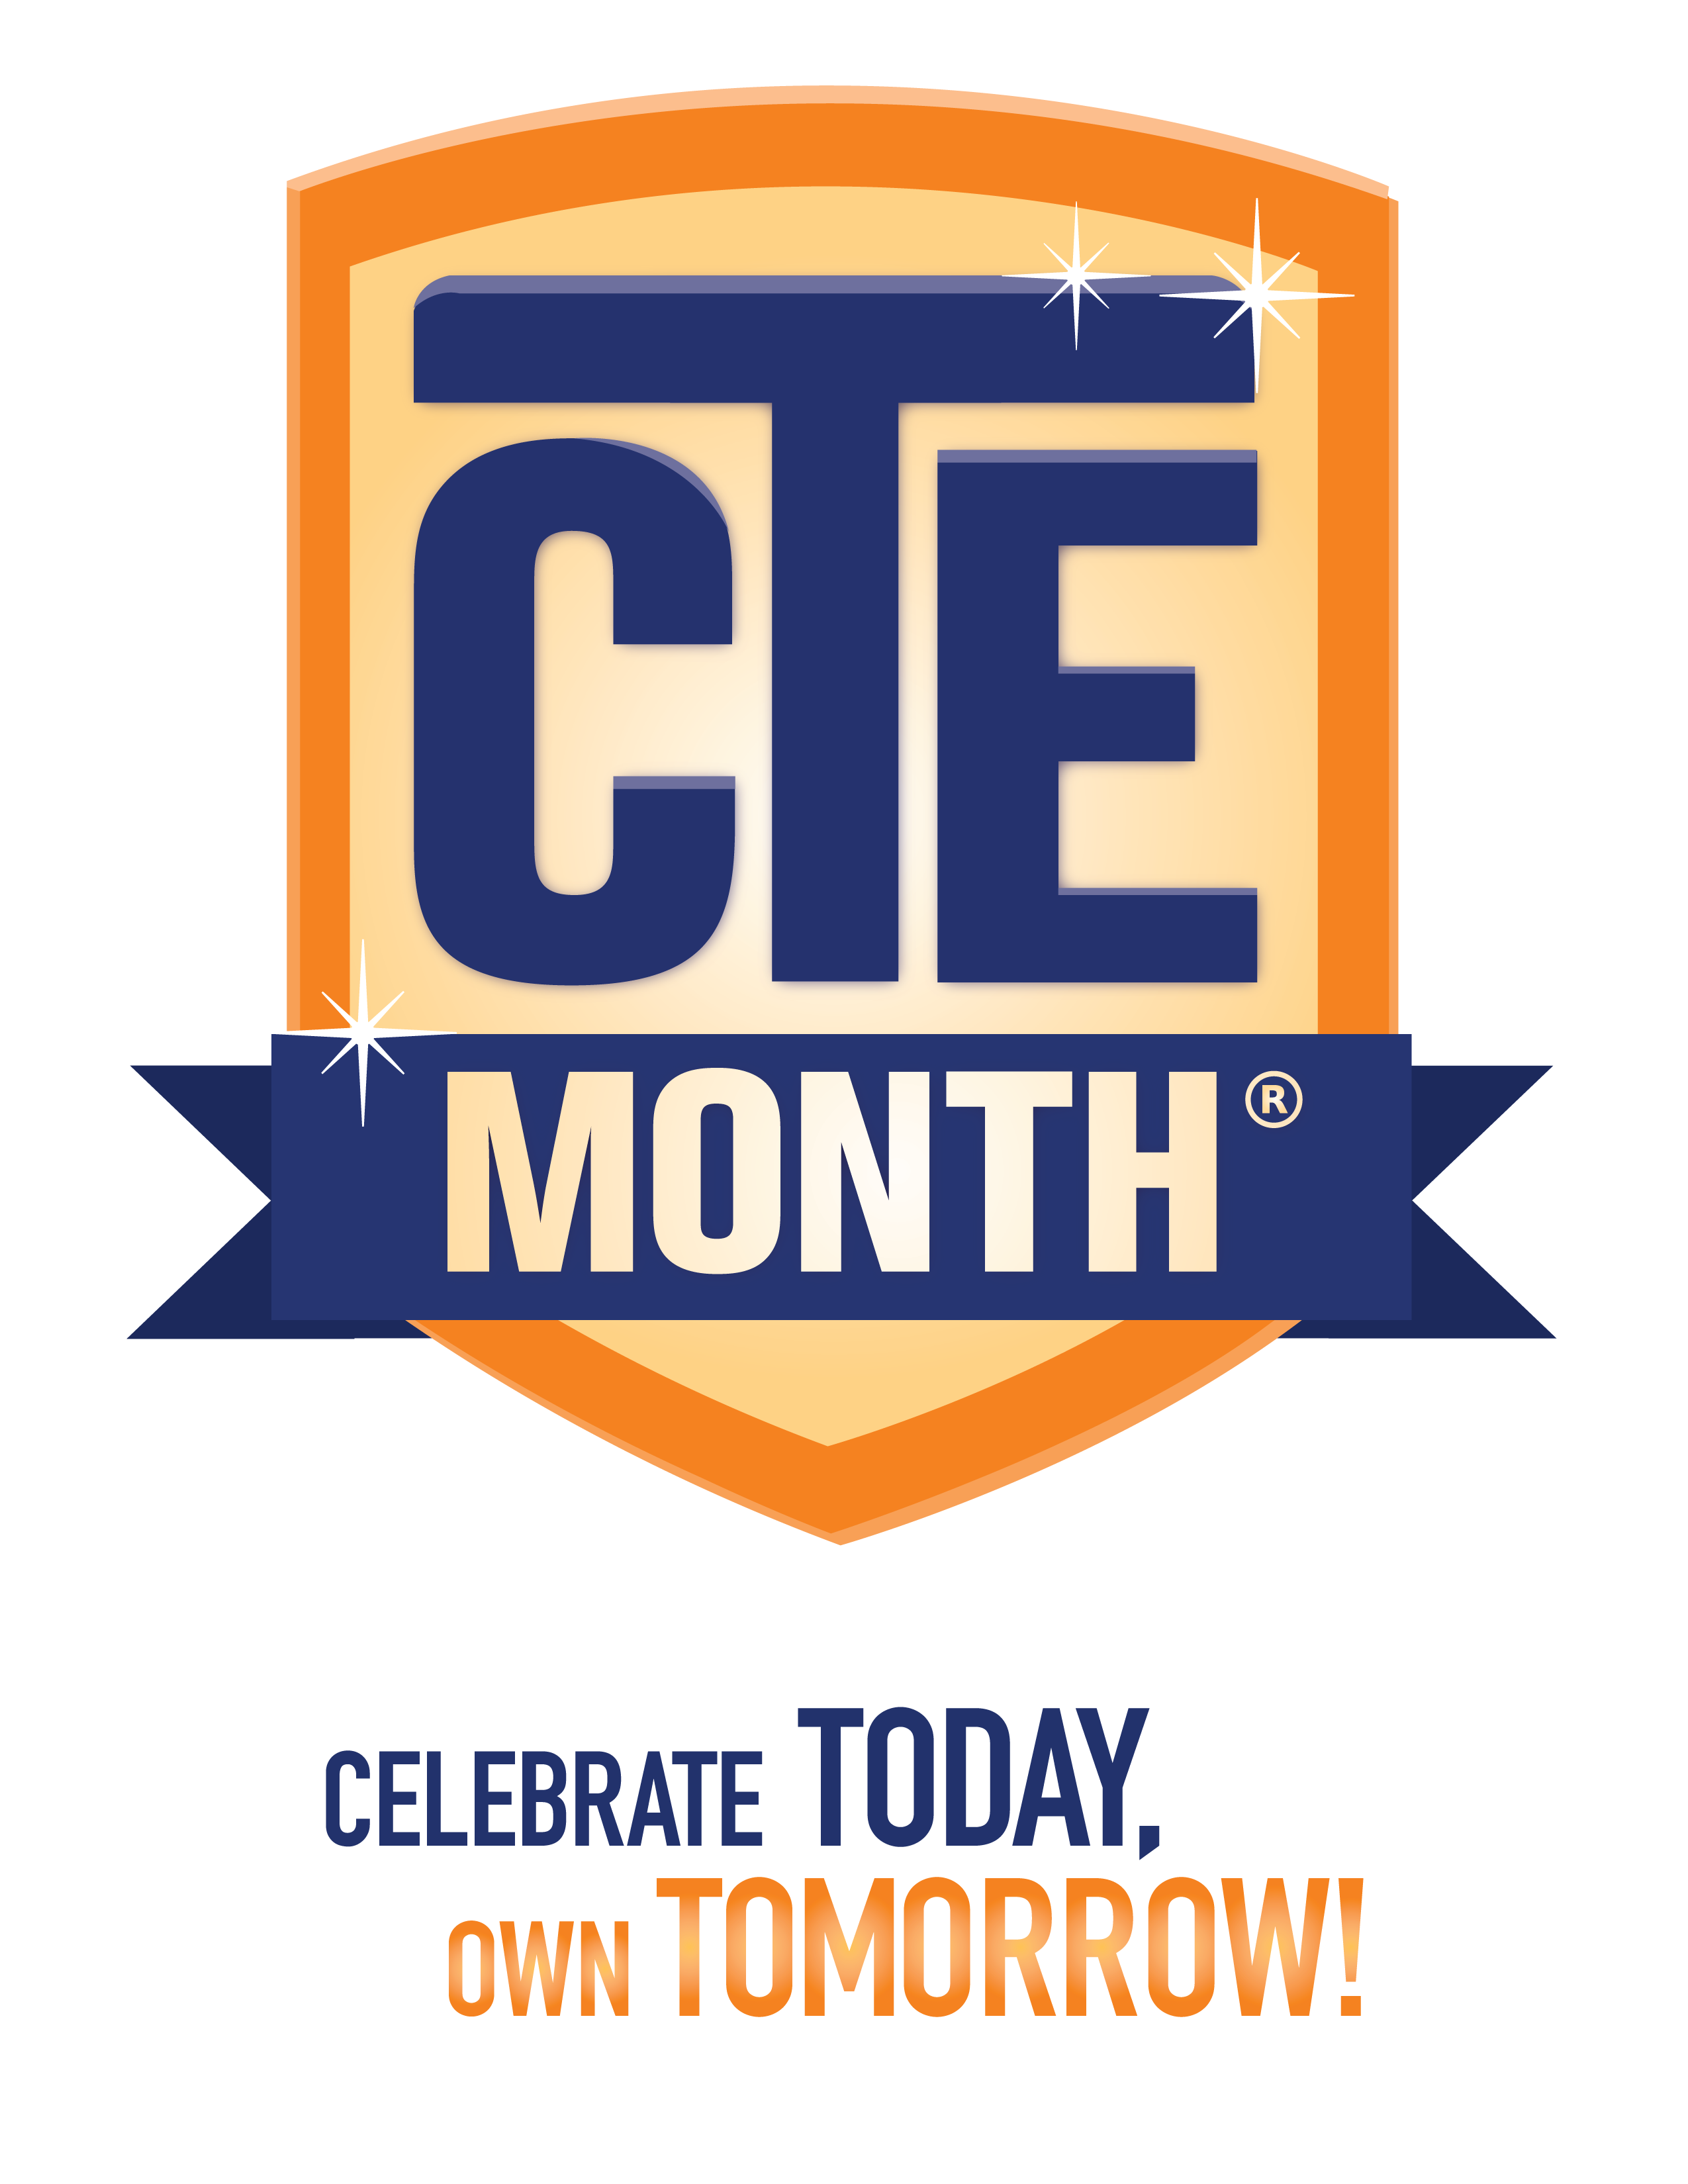 Celebrating Career Technical Education: Featured Image 1